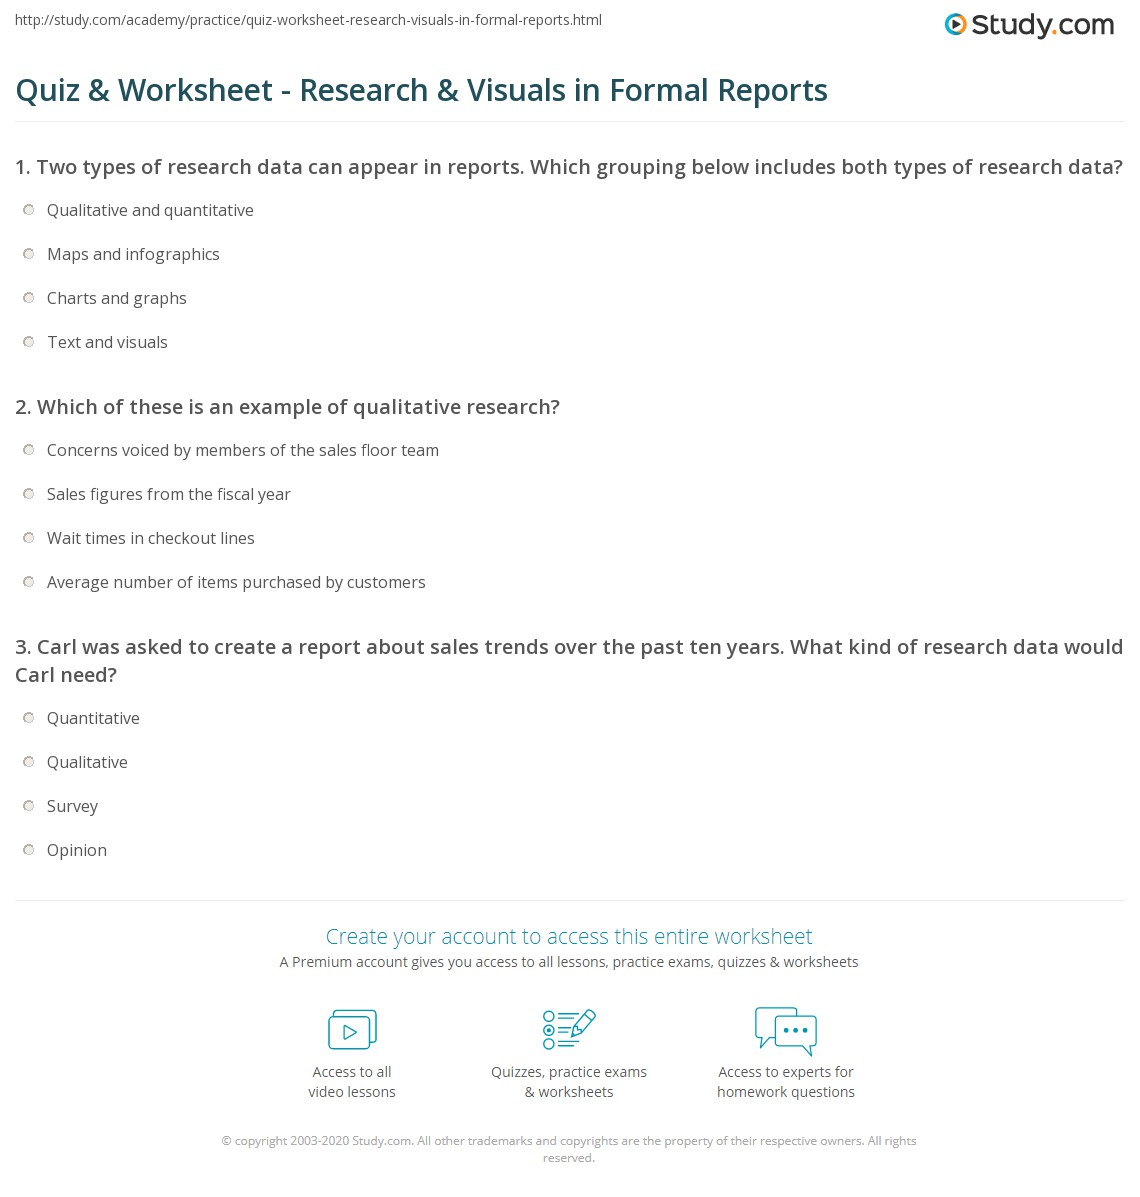 quiz worksheet research visuals in formal reports study com